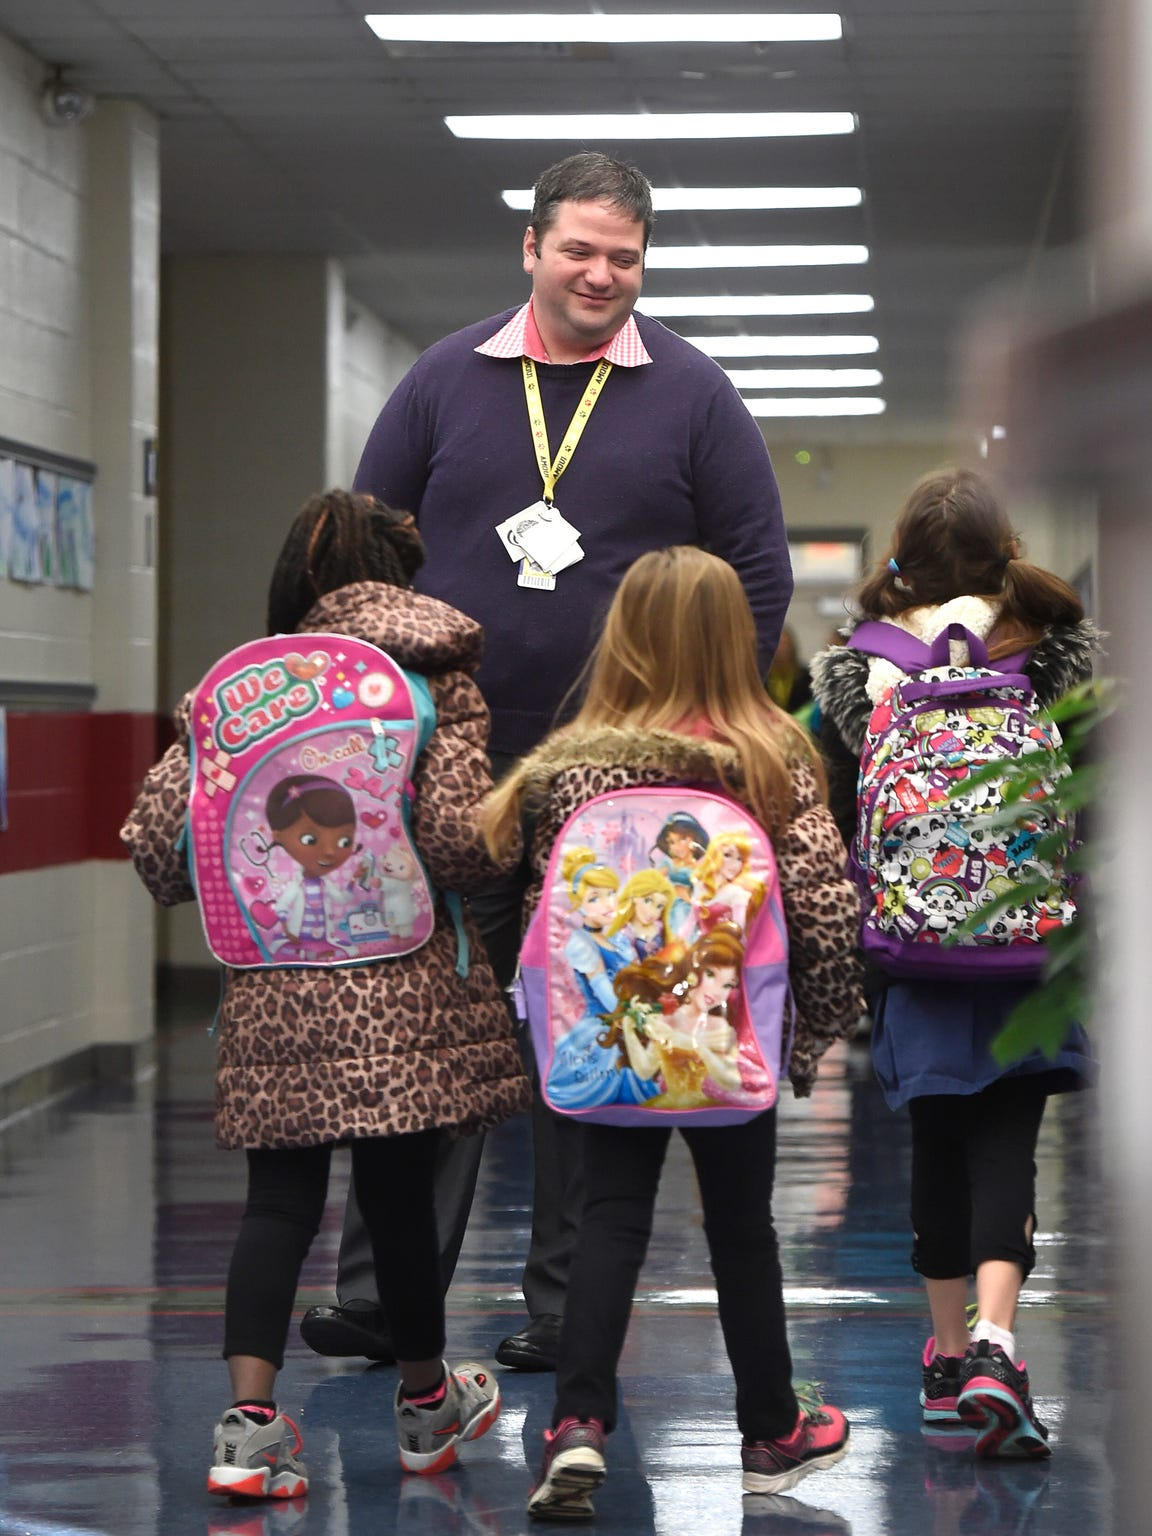 Amqui Elementary School Principal Lance High hugs a student Feb. 16, 2017. High was appointed Amqui's principal for the 2015-16 school year. He now works at Smith Springs Elementary School in South Nashville.